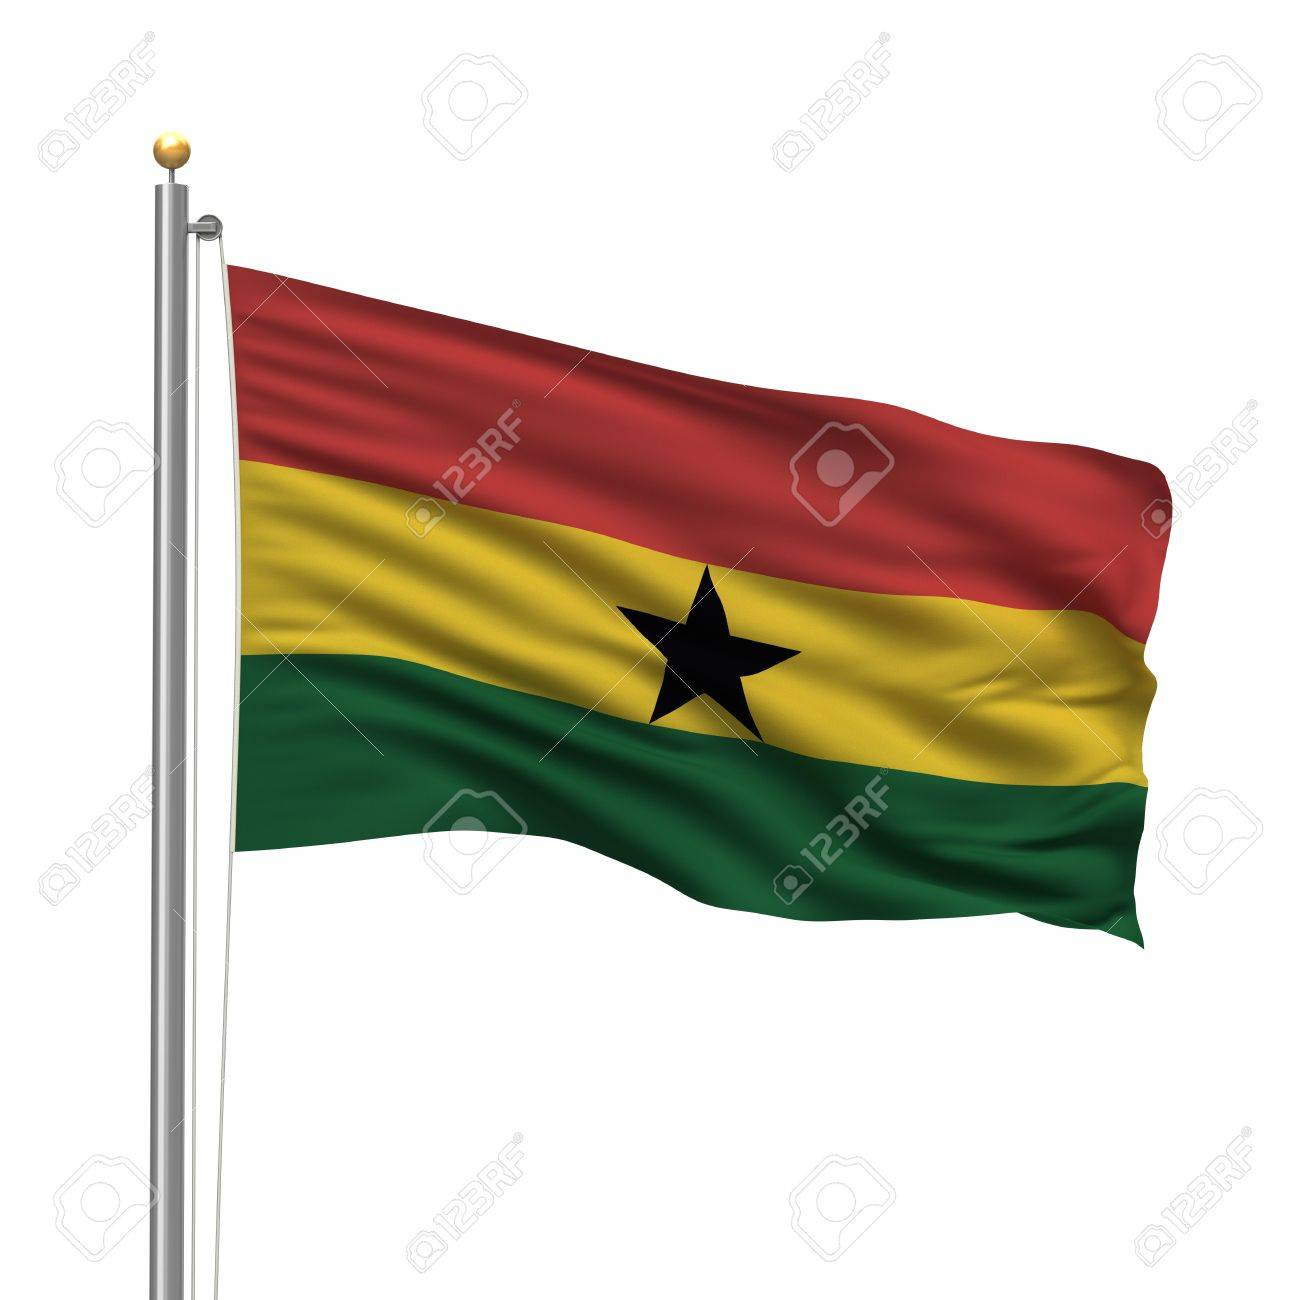 Flag of Ghana with flag pole waving in the wind over white background Stock Photo - 8118635